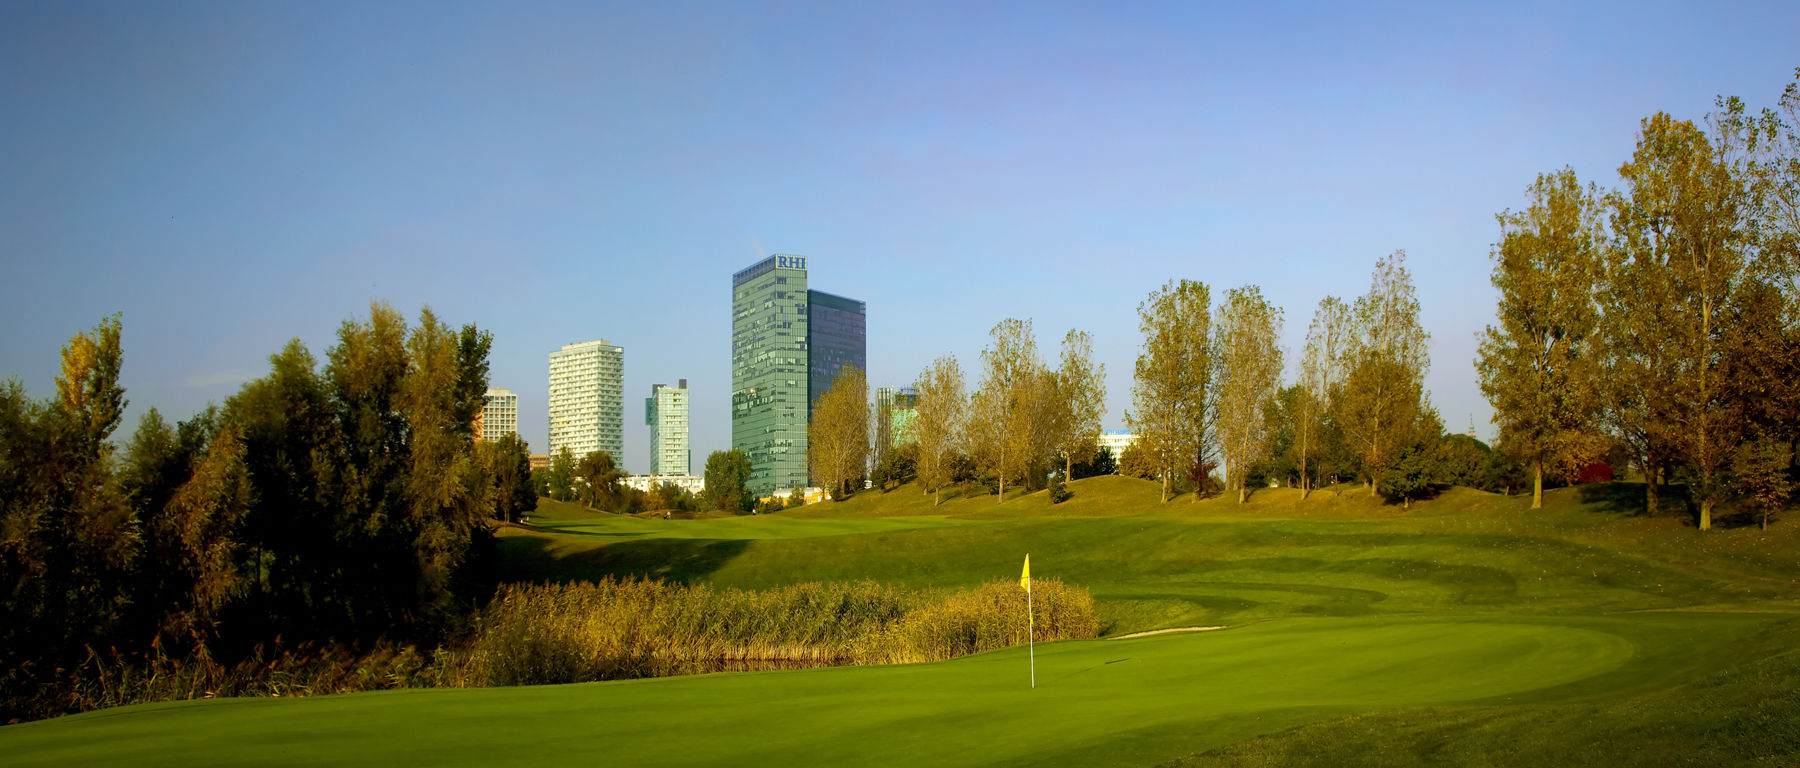 City and country golf club am wienerberg cover picture